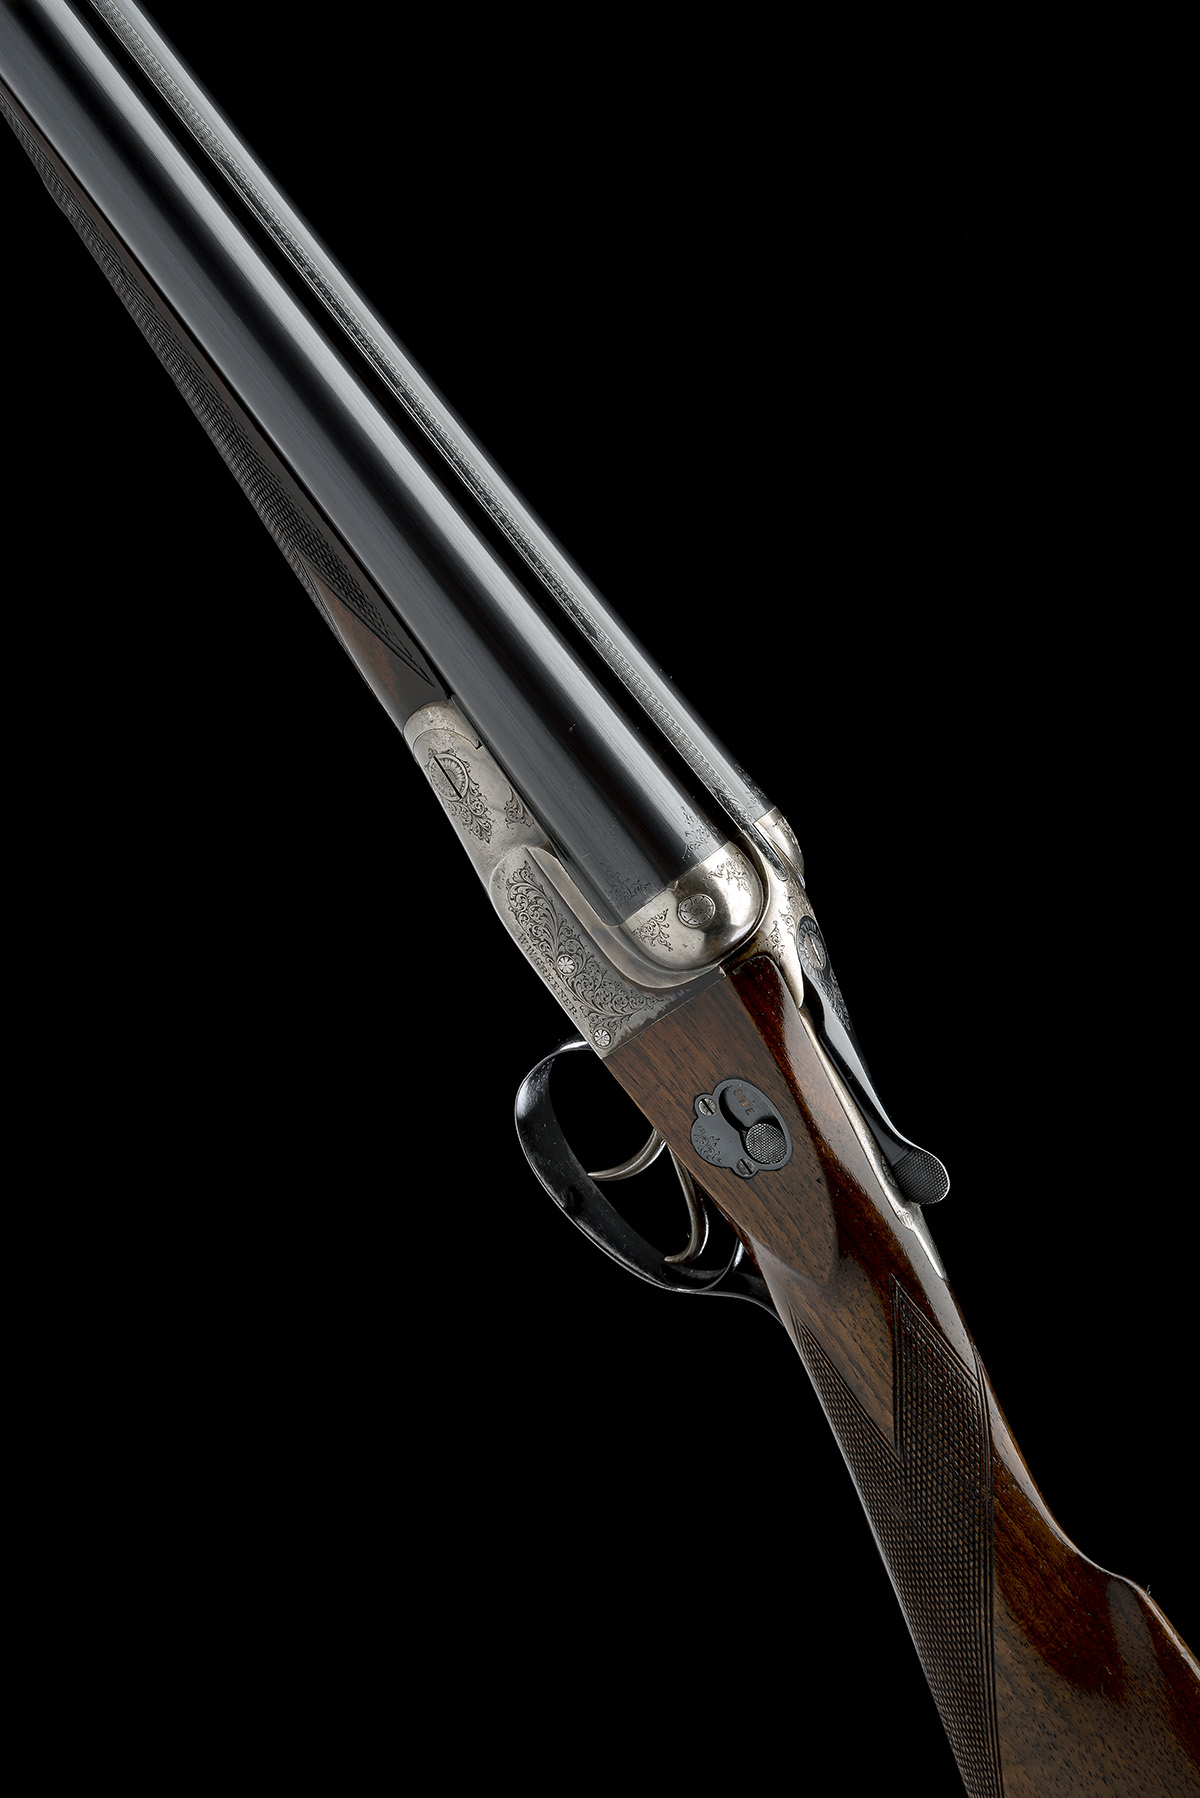 W.W. GREENER A 12-BORE 'FH35' FACILE PRINCEPS FORE-END EJECTOR, serial no. 67448, for 1924, 30in.